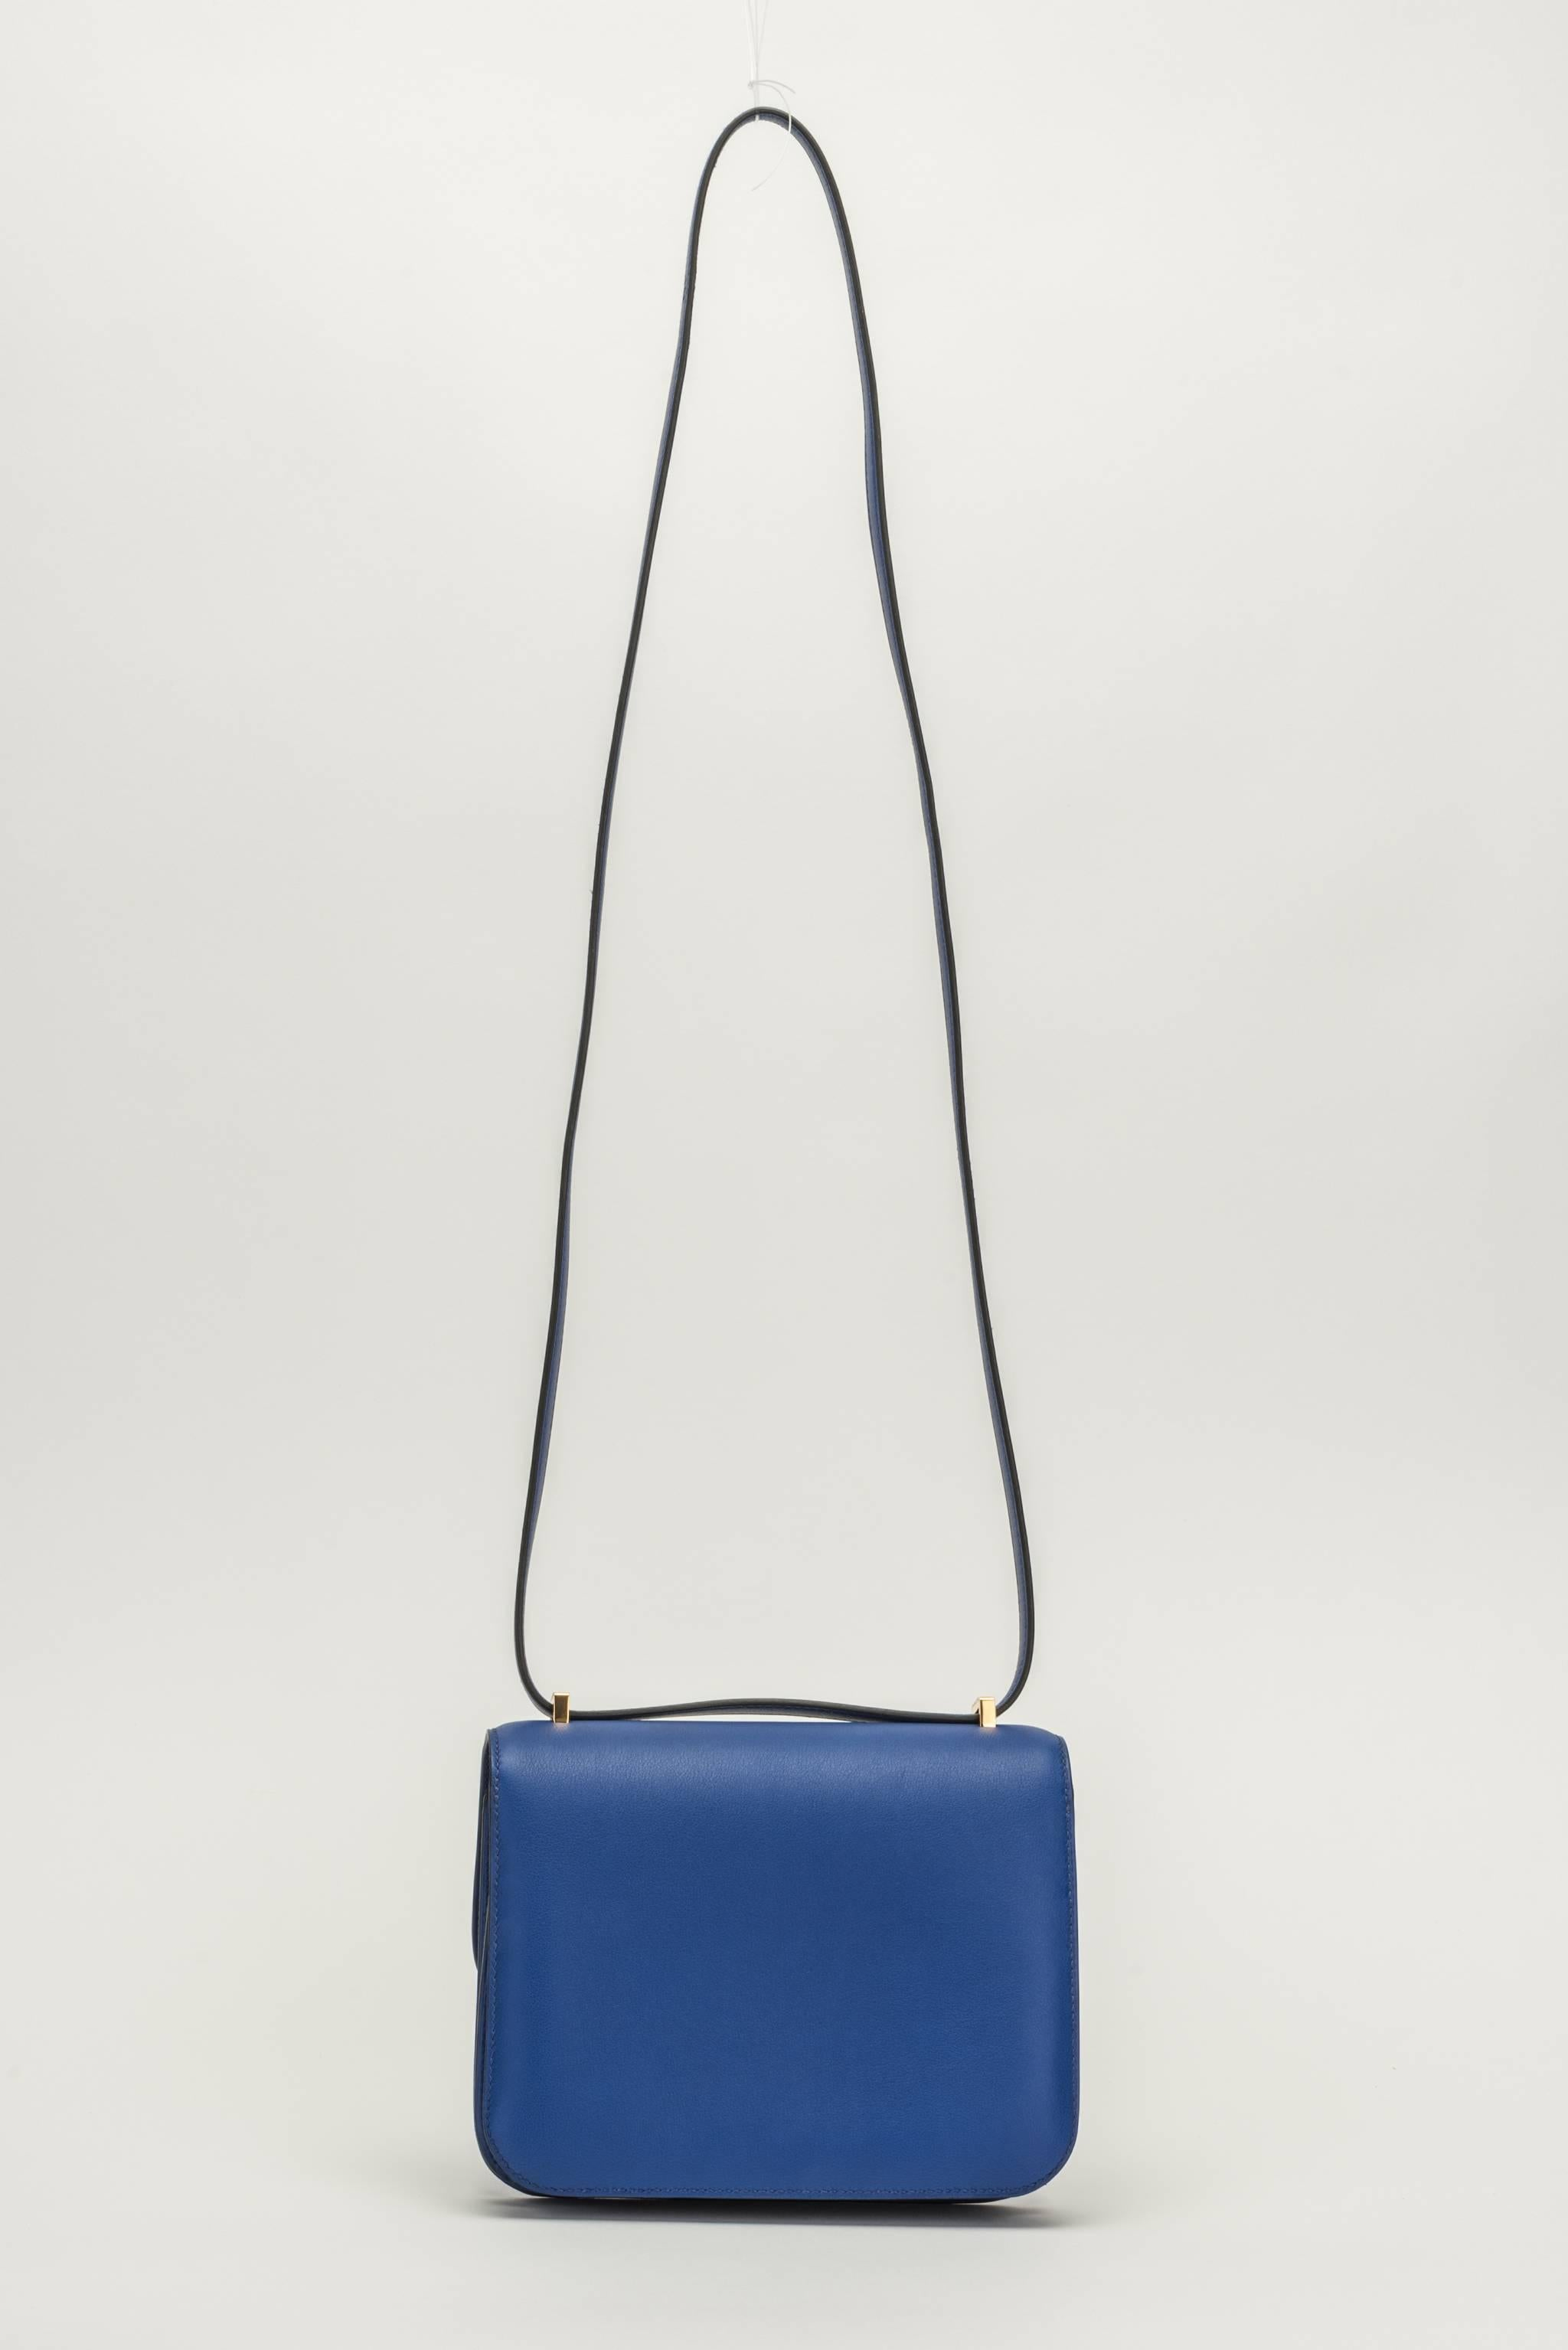 6c0fb0c9b8dd ... store hermes mini constance cross body 18cm in electric blue swift  leather and gold tone hardware